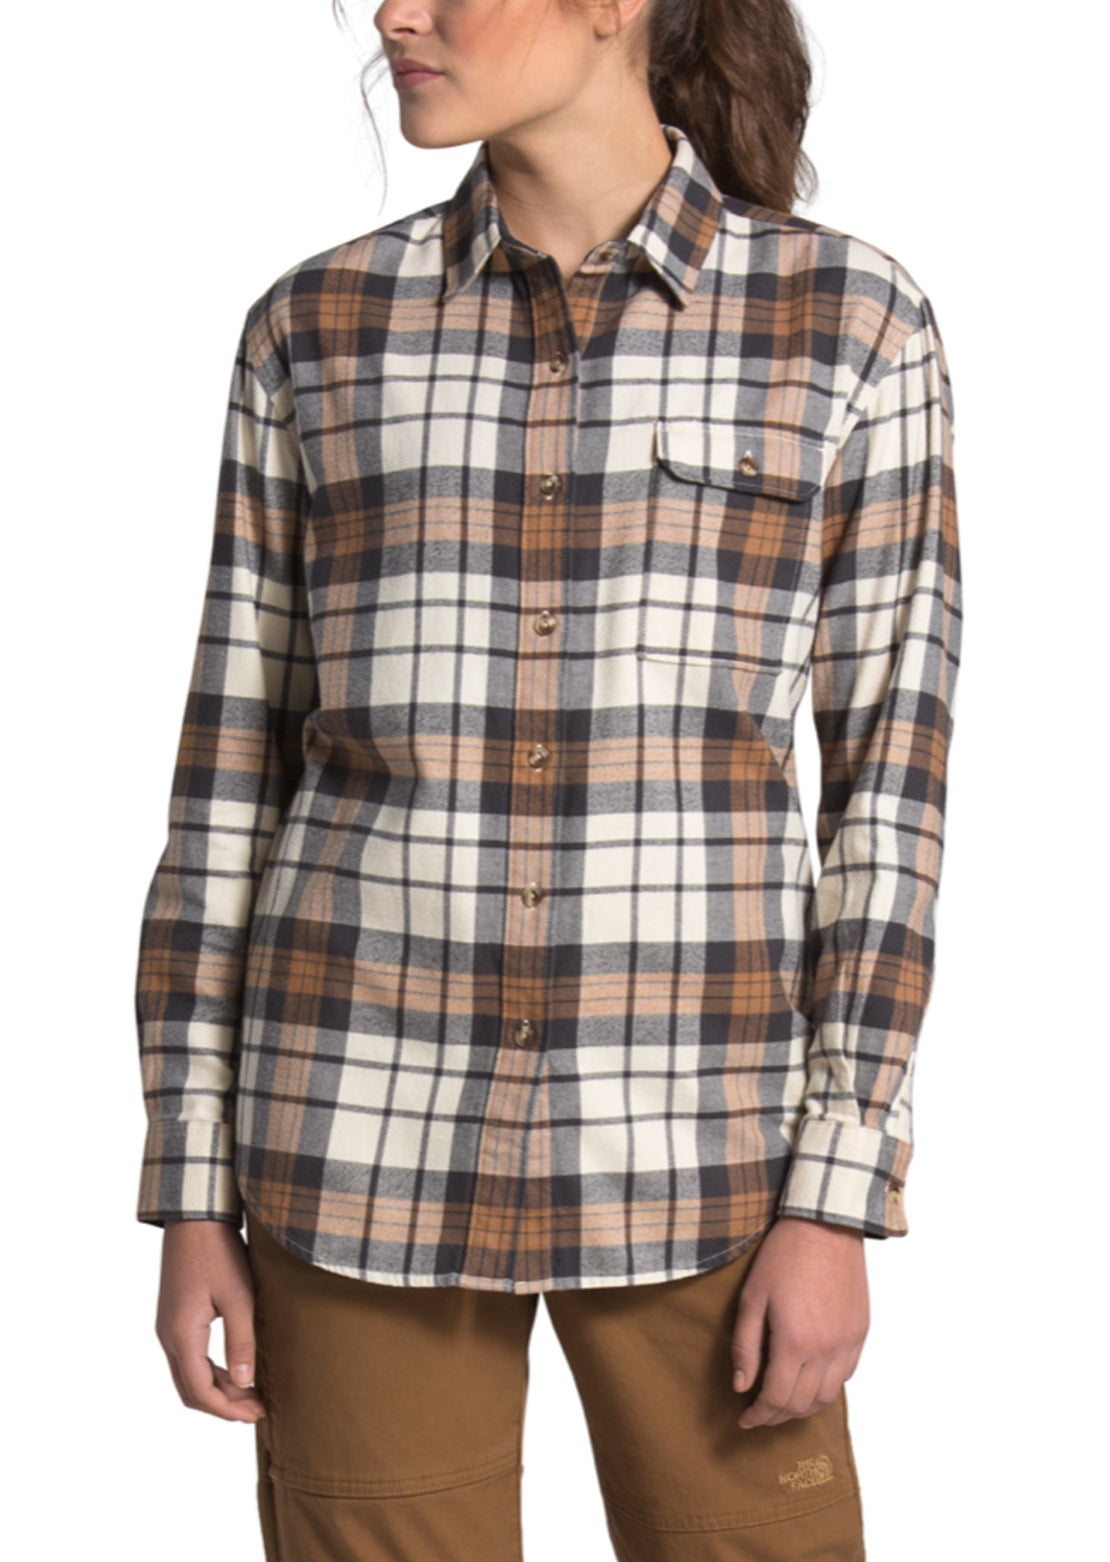 The North Face Women's Berkeley Boyfriend Longsleeve Shirt Vintage White Heritage Medium Three Color Plaid